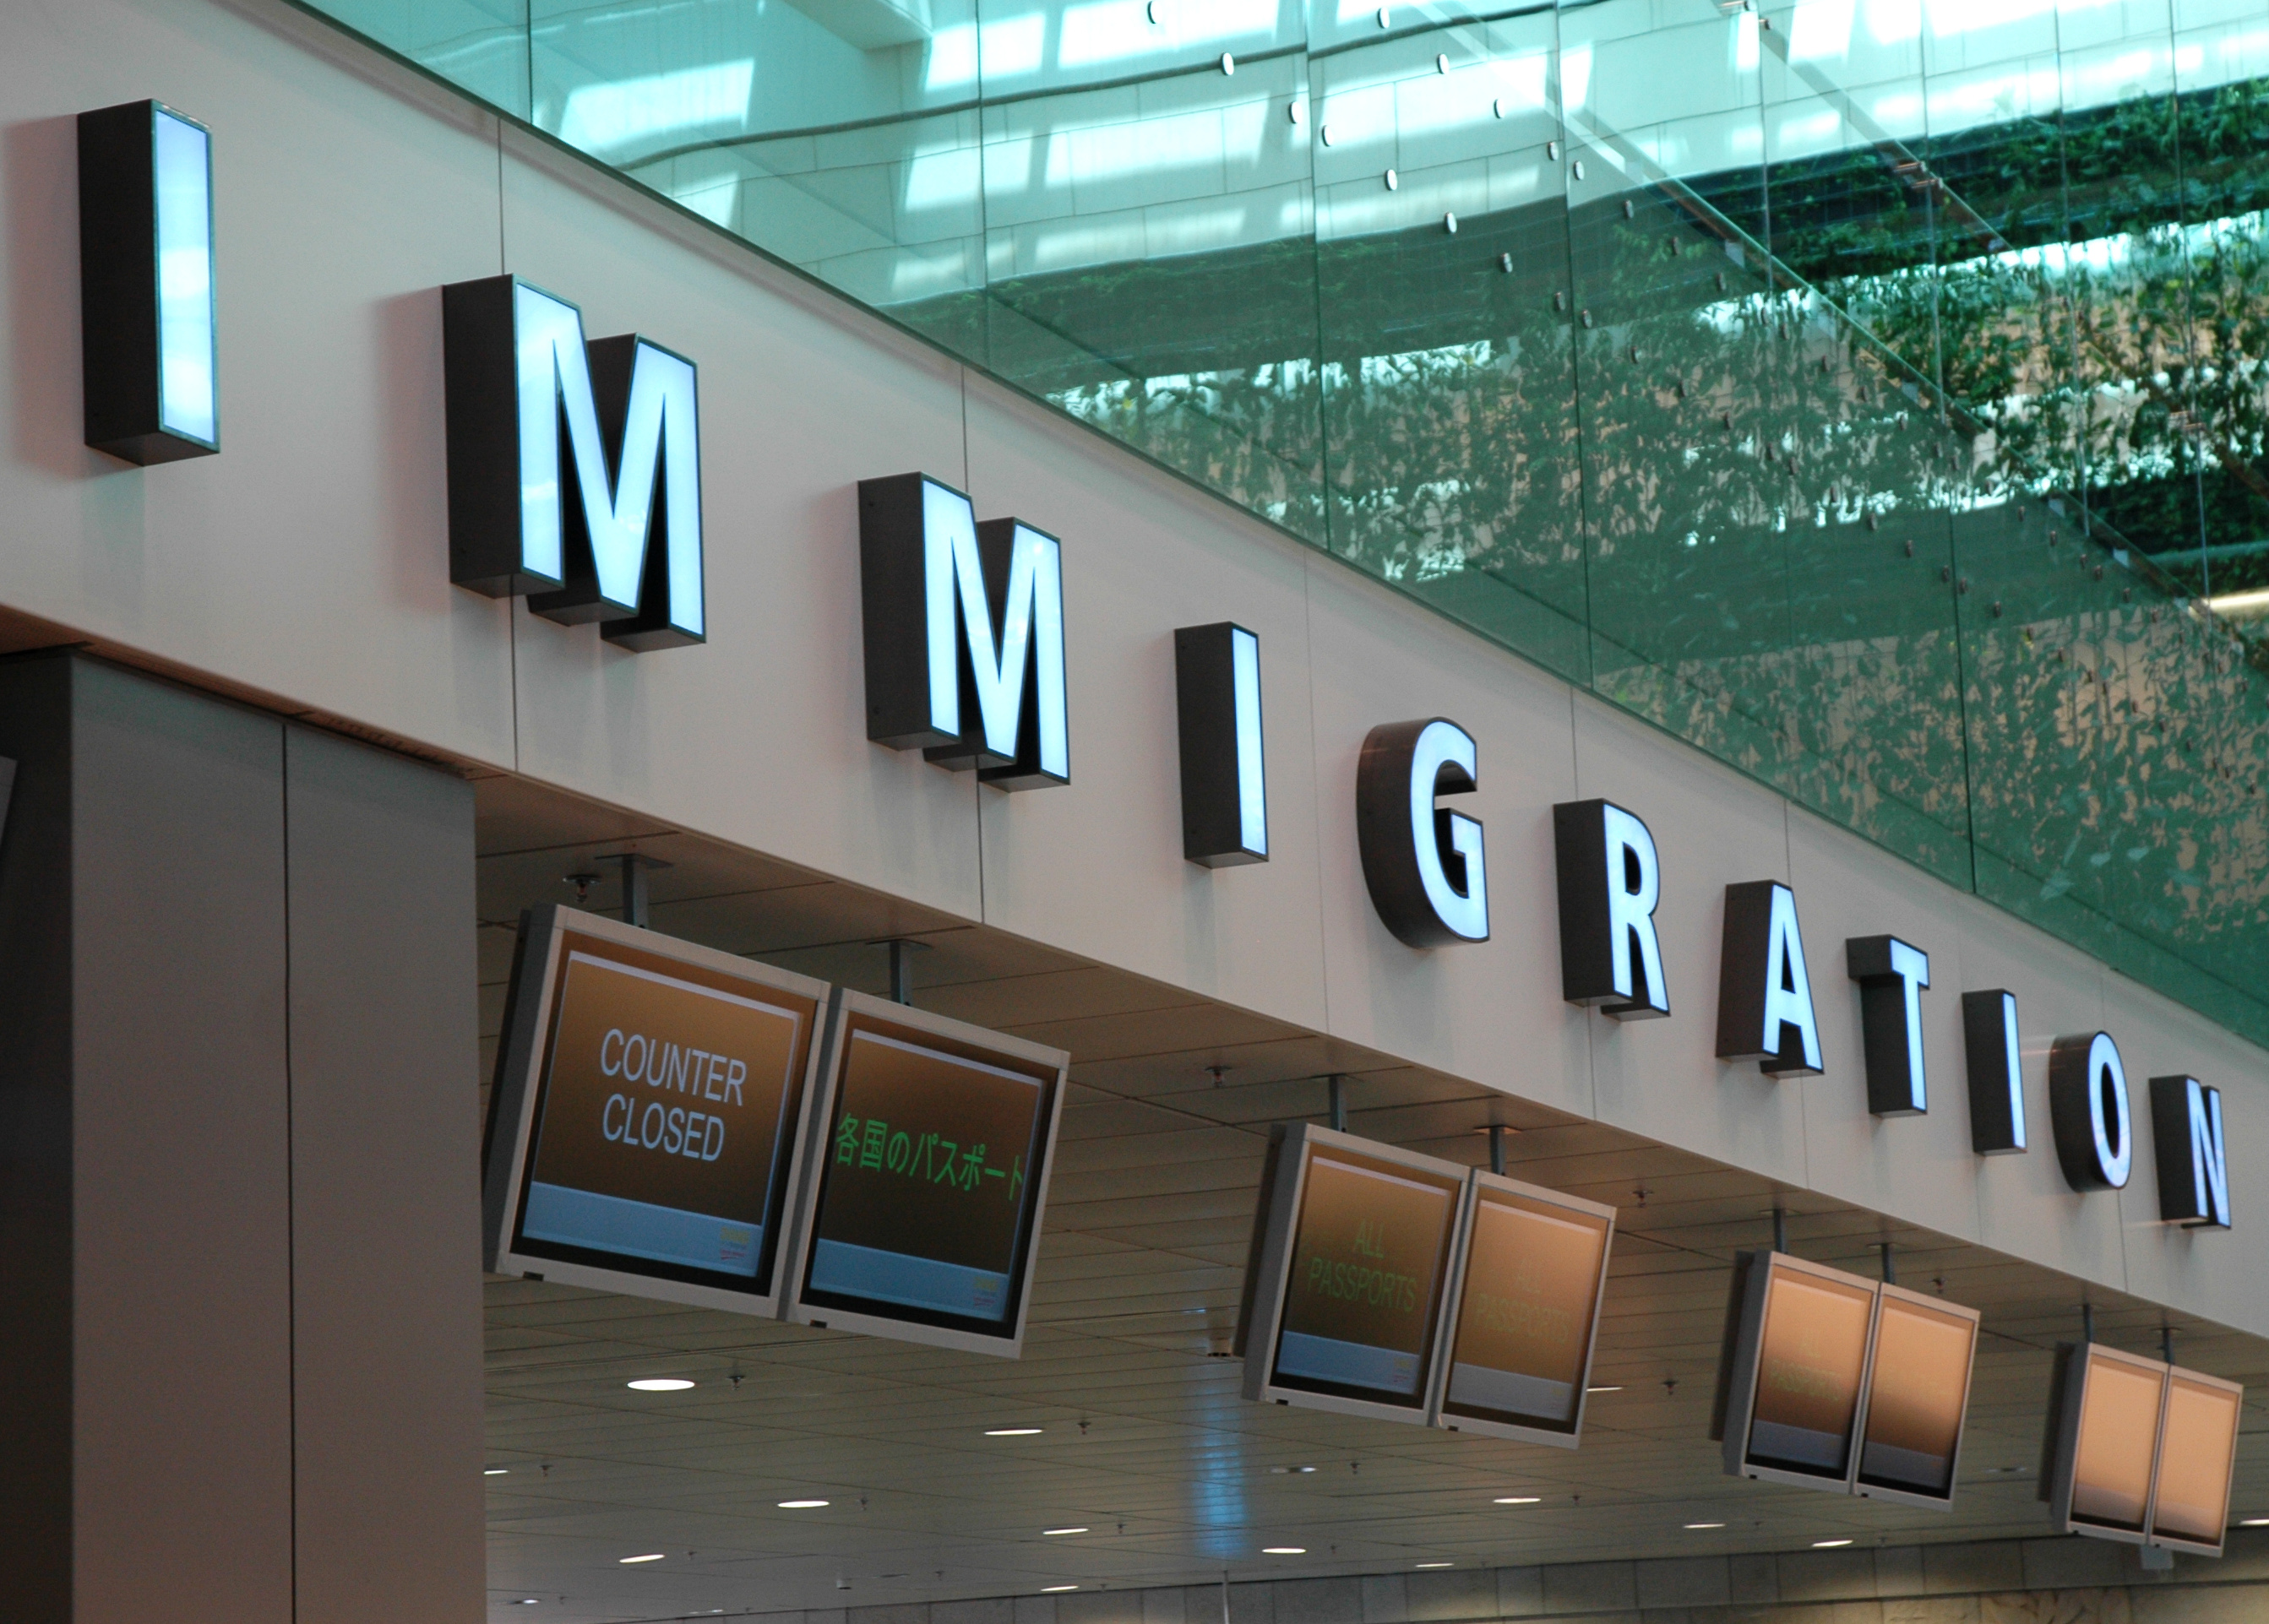 Are People Really Afraid Of Immigration Or Are They Afraid Of Change